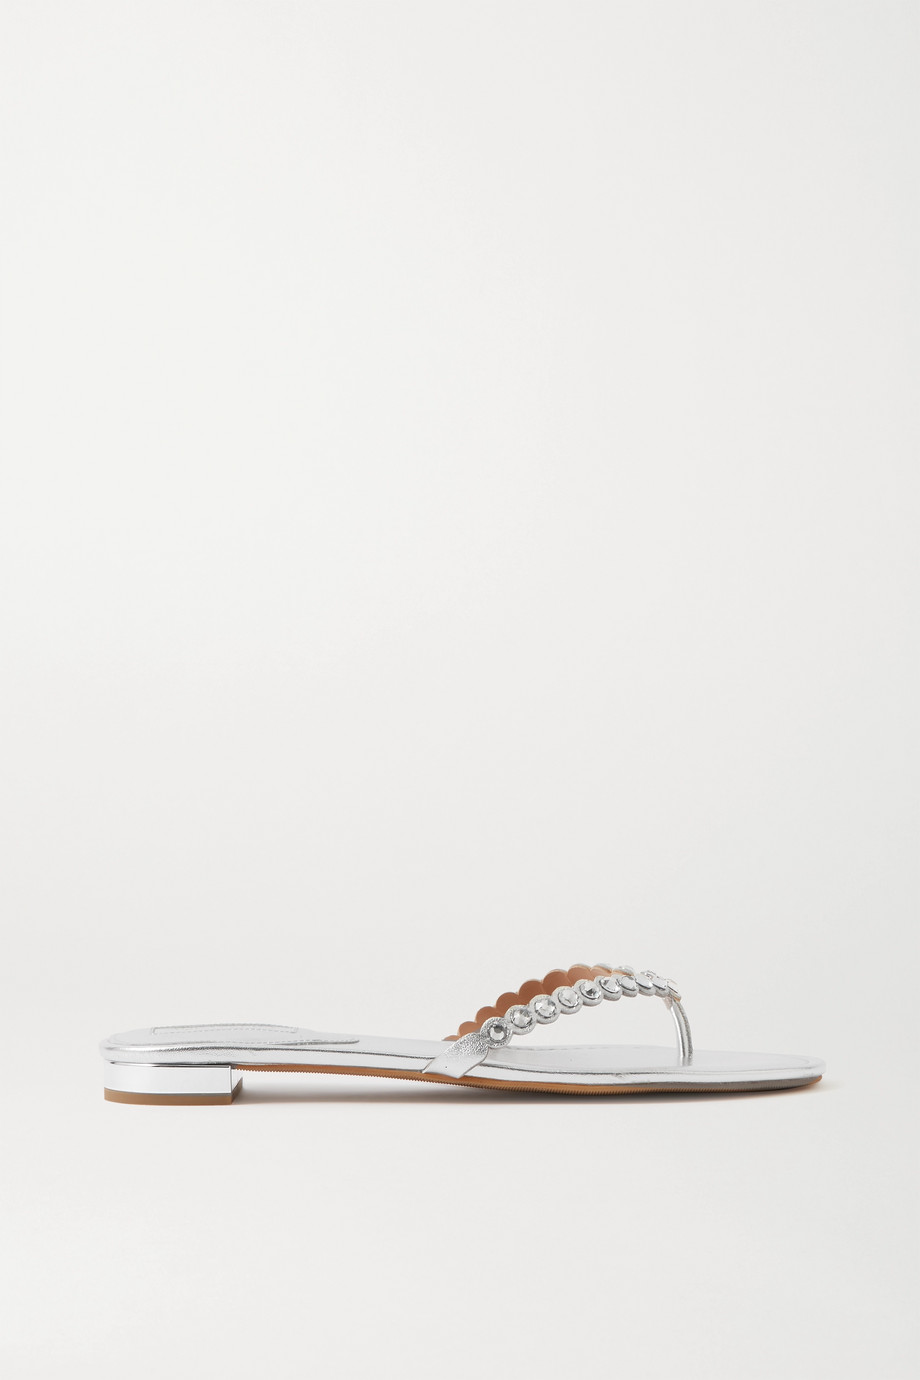 Aquazzura Tequila crystal-embellished metallic leather flip flops